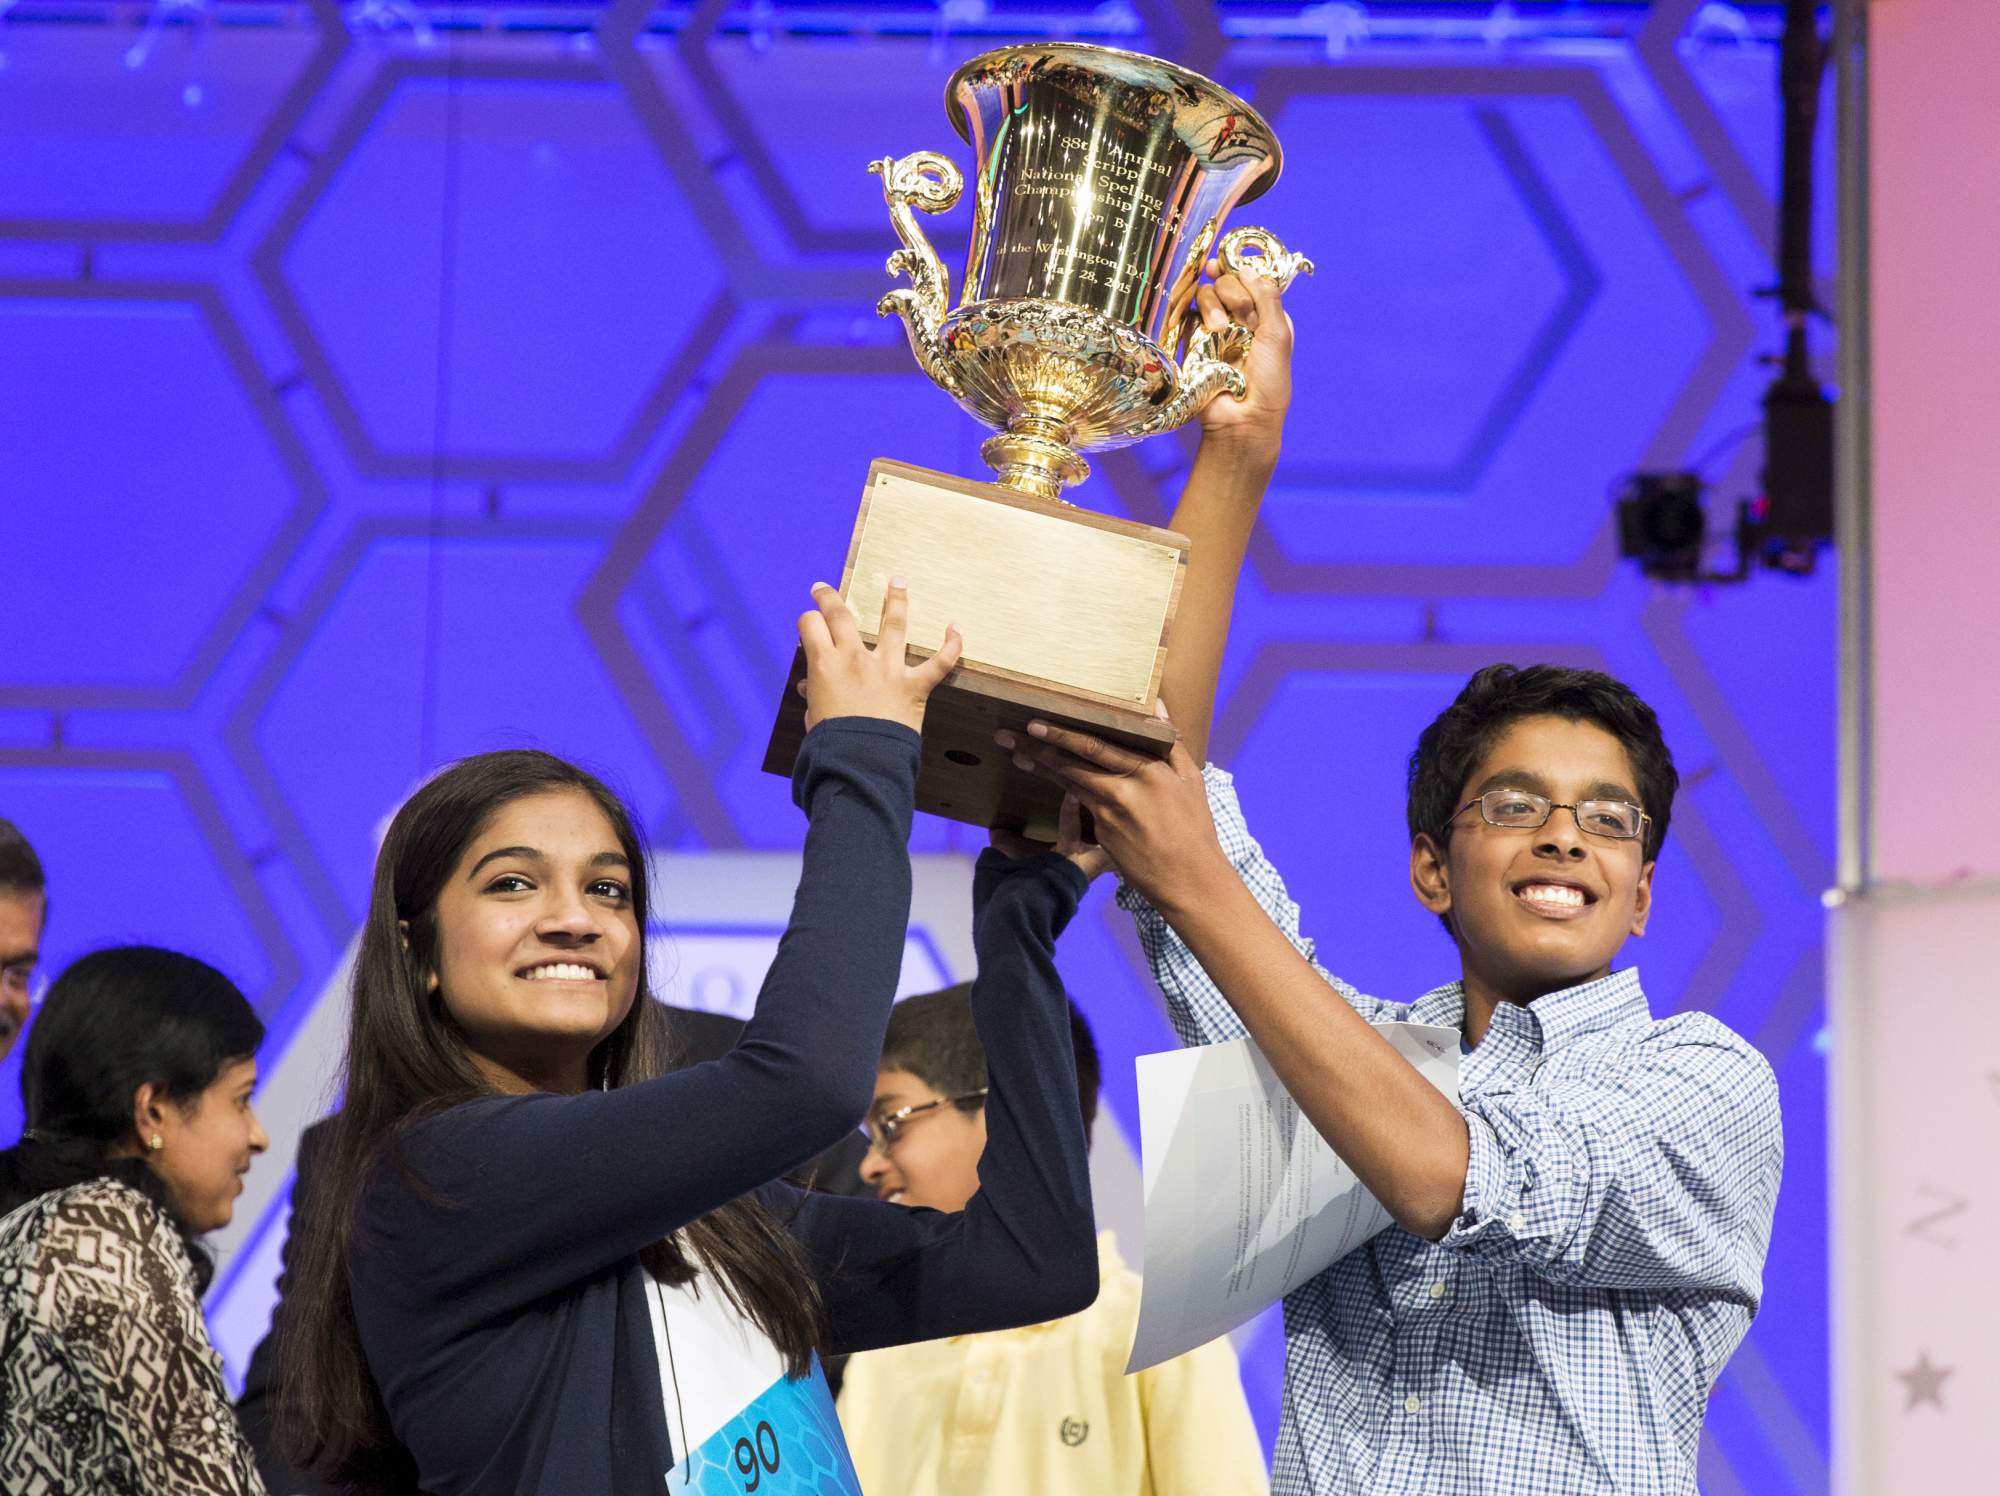 Vanya Shivashankar of Olathe, Kansas, and Gokul Venkatachalam, St. Louis Missouri lift the trophy after becoming co-champions after the final round of the 88th annual Scripps National Spelling Bee